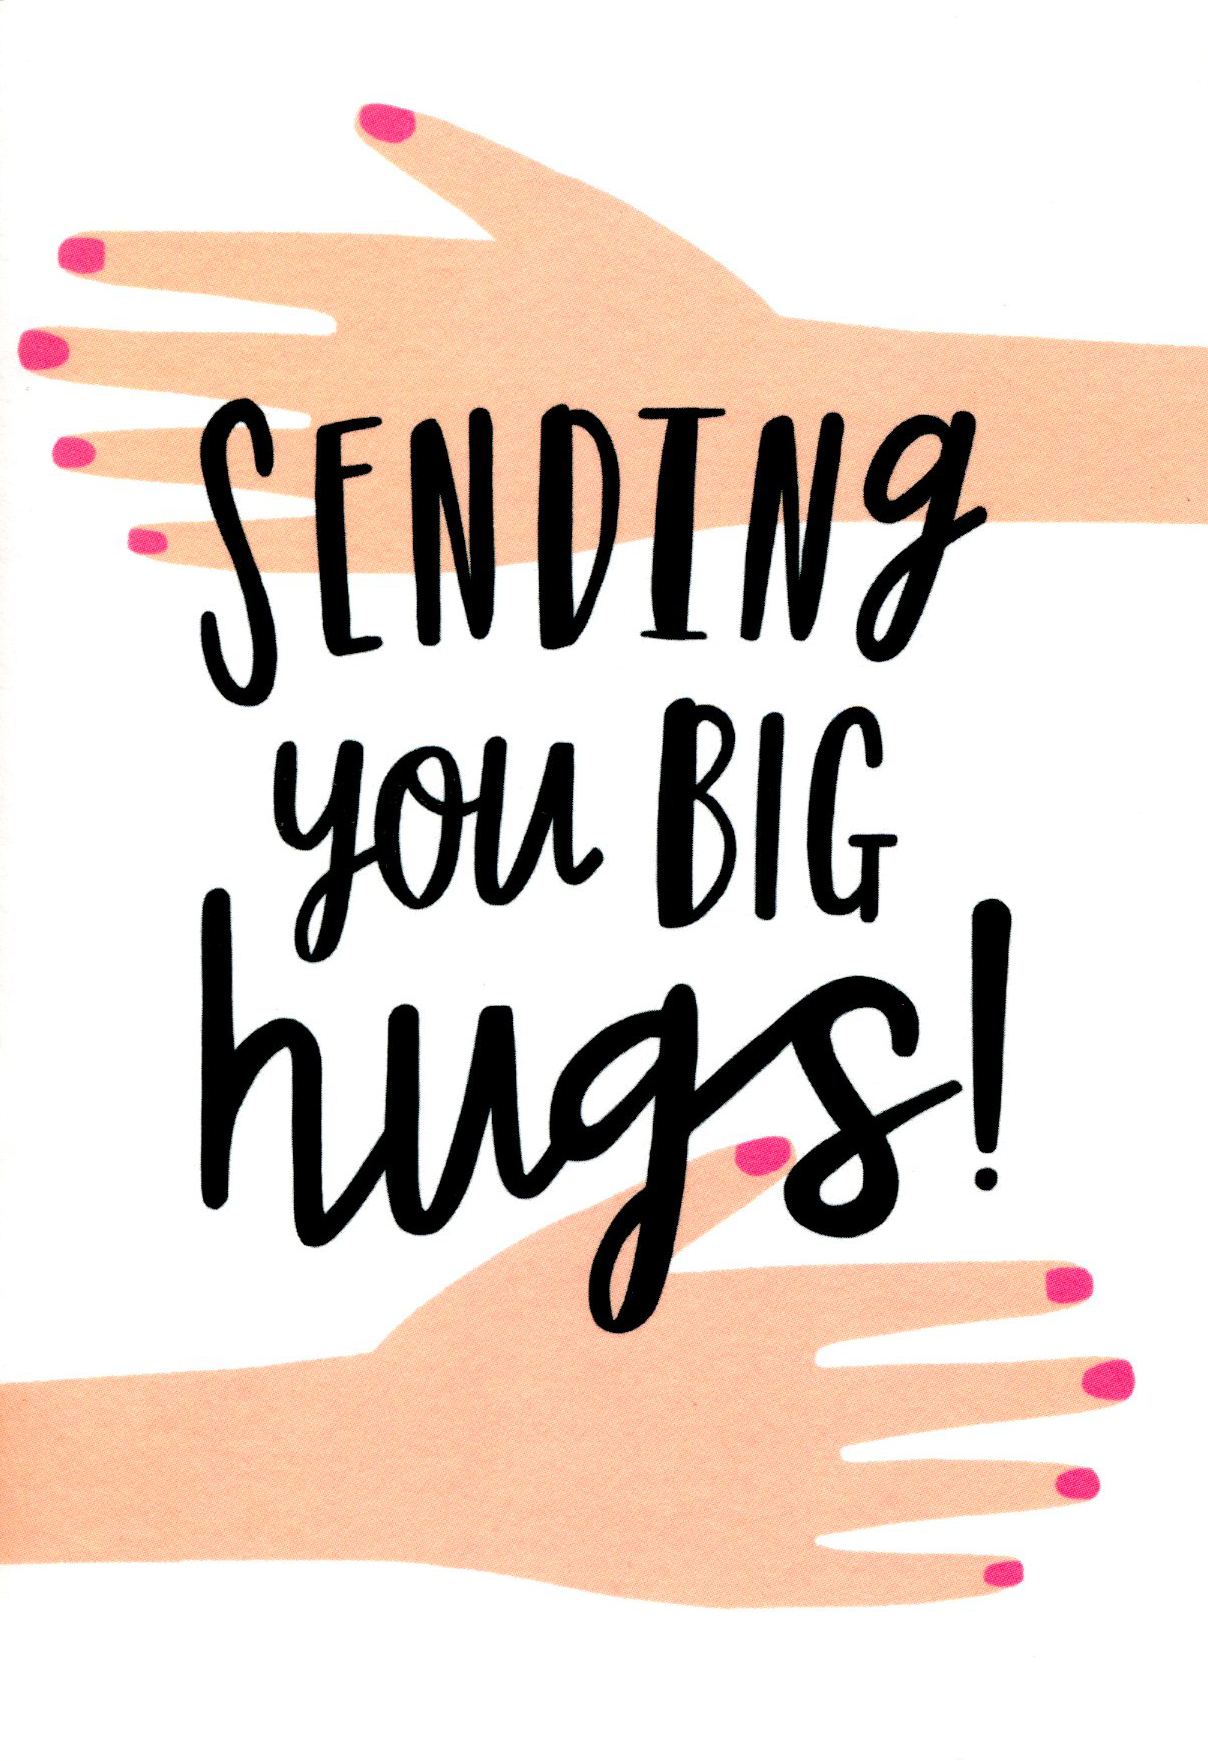 Sending You Hugs Thinking of You Card